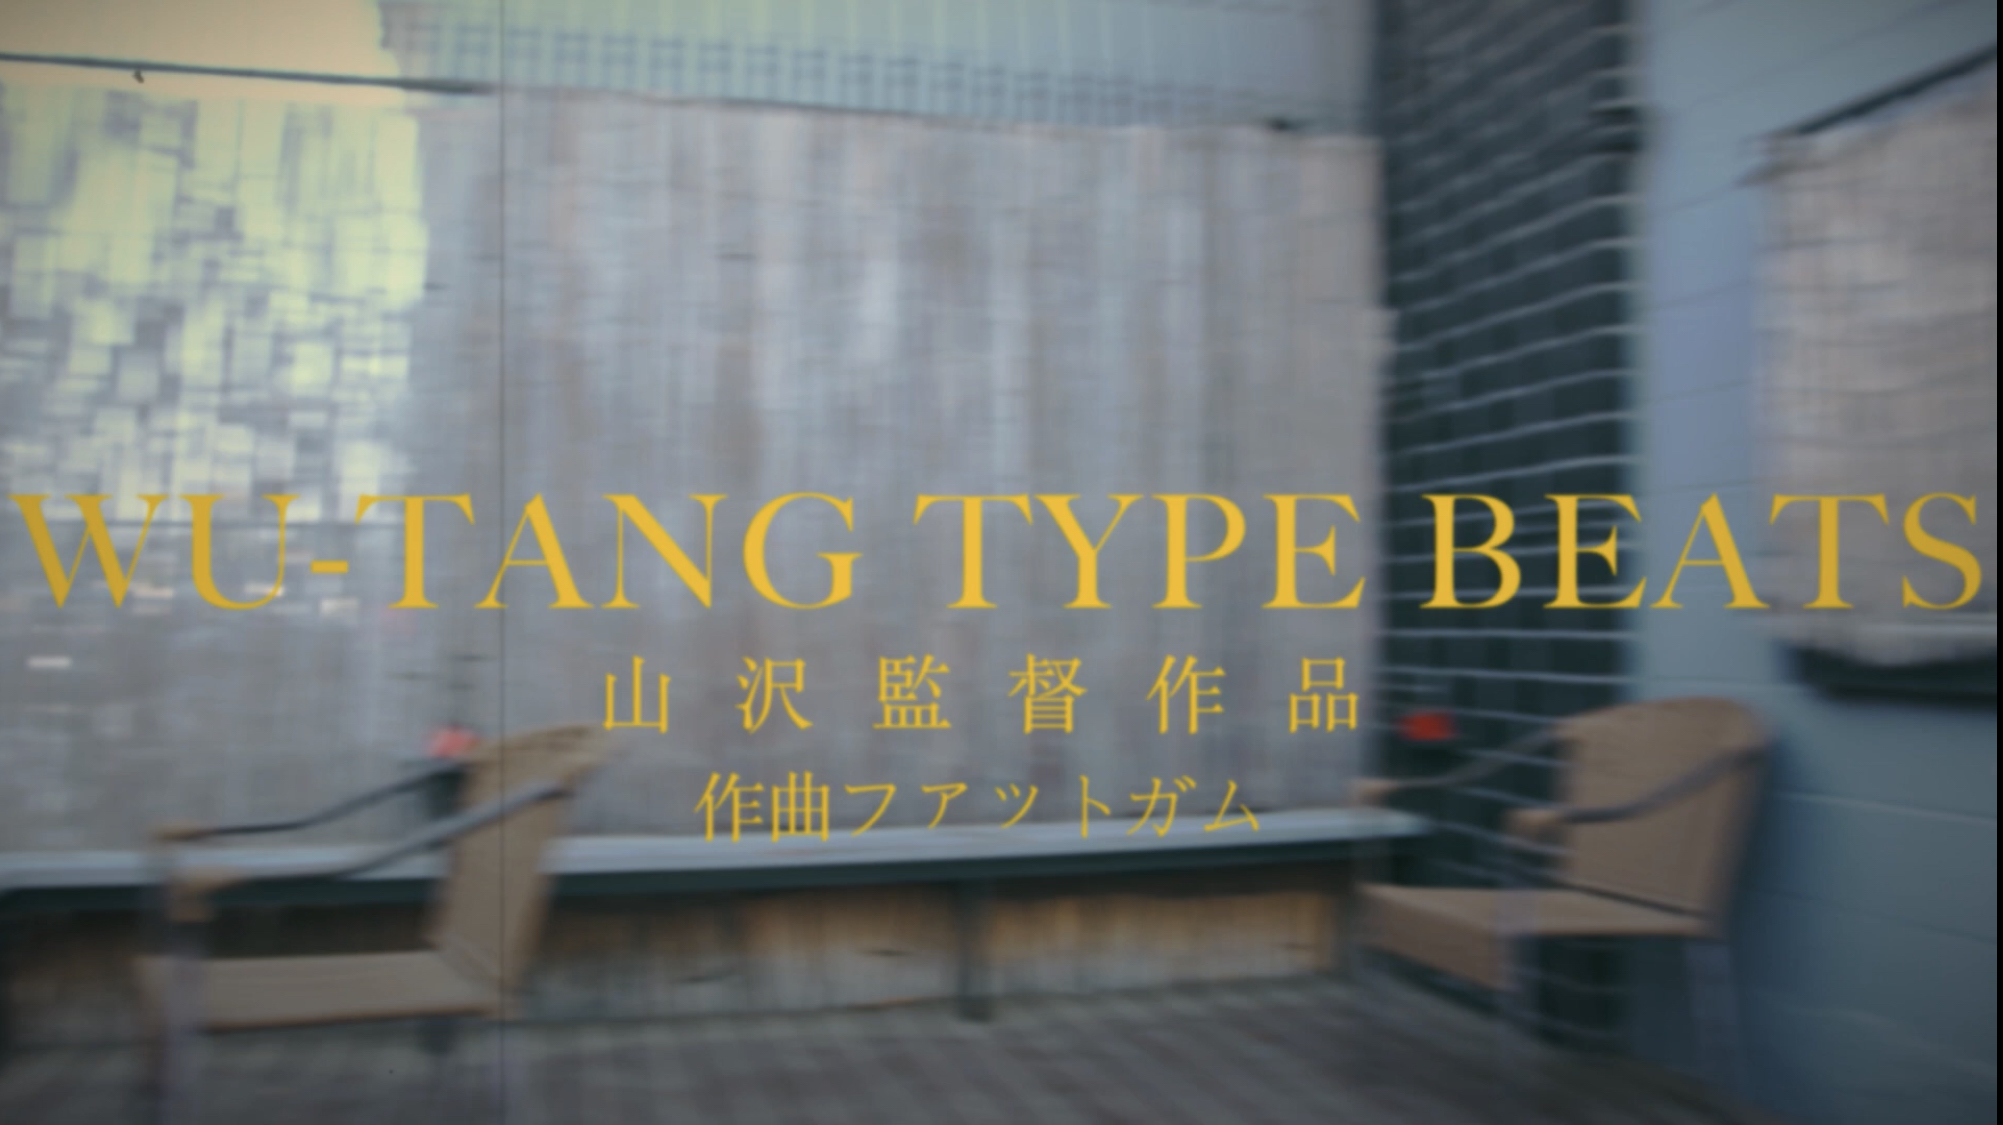 G YAMAZAWA - Wu-Tang Type Beats [video] + Thinkpeace EP